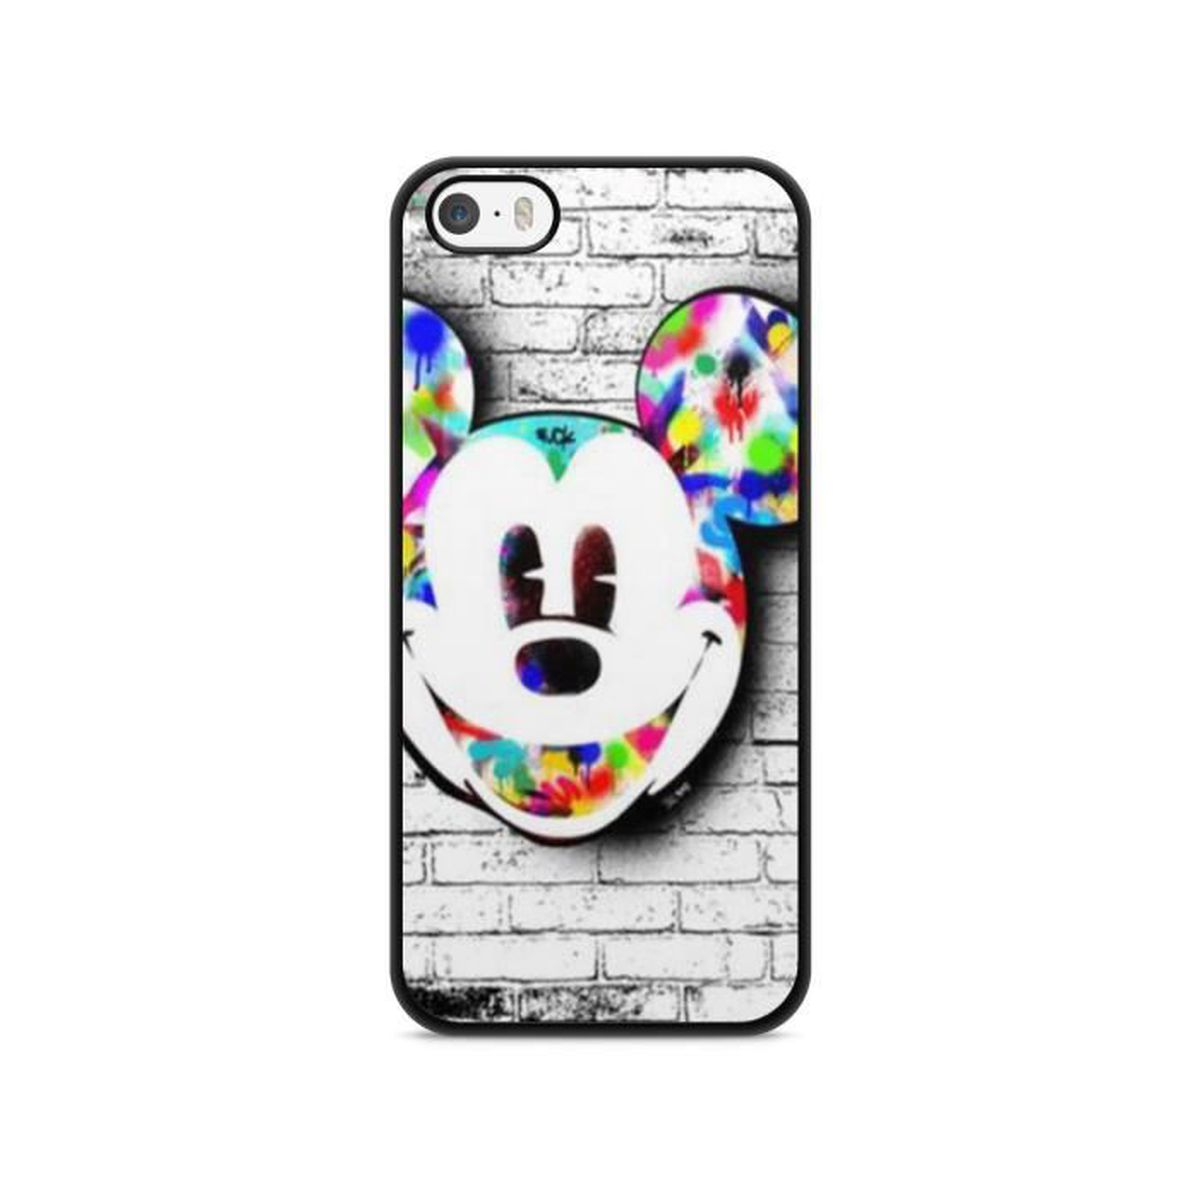 coque iphone 5 5s se disney mickey obey swag fuck weed love ref12078 achat coque bumper. Black Bedroom Furniture Sets. Home Design Ideas